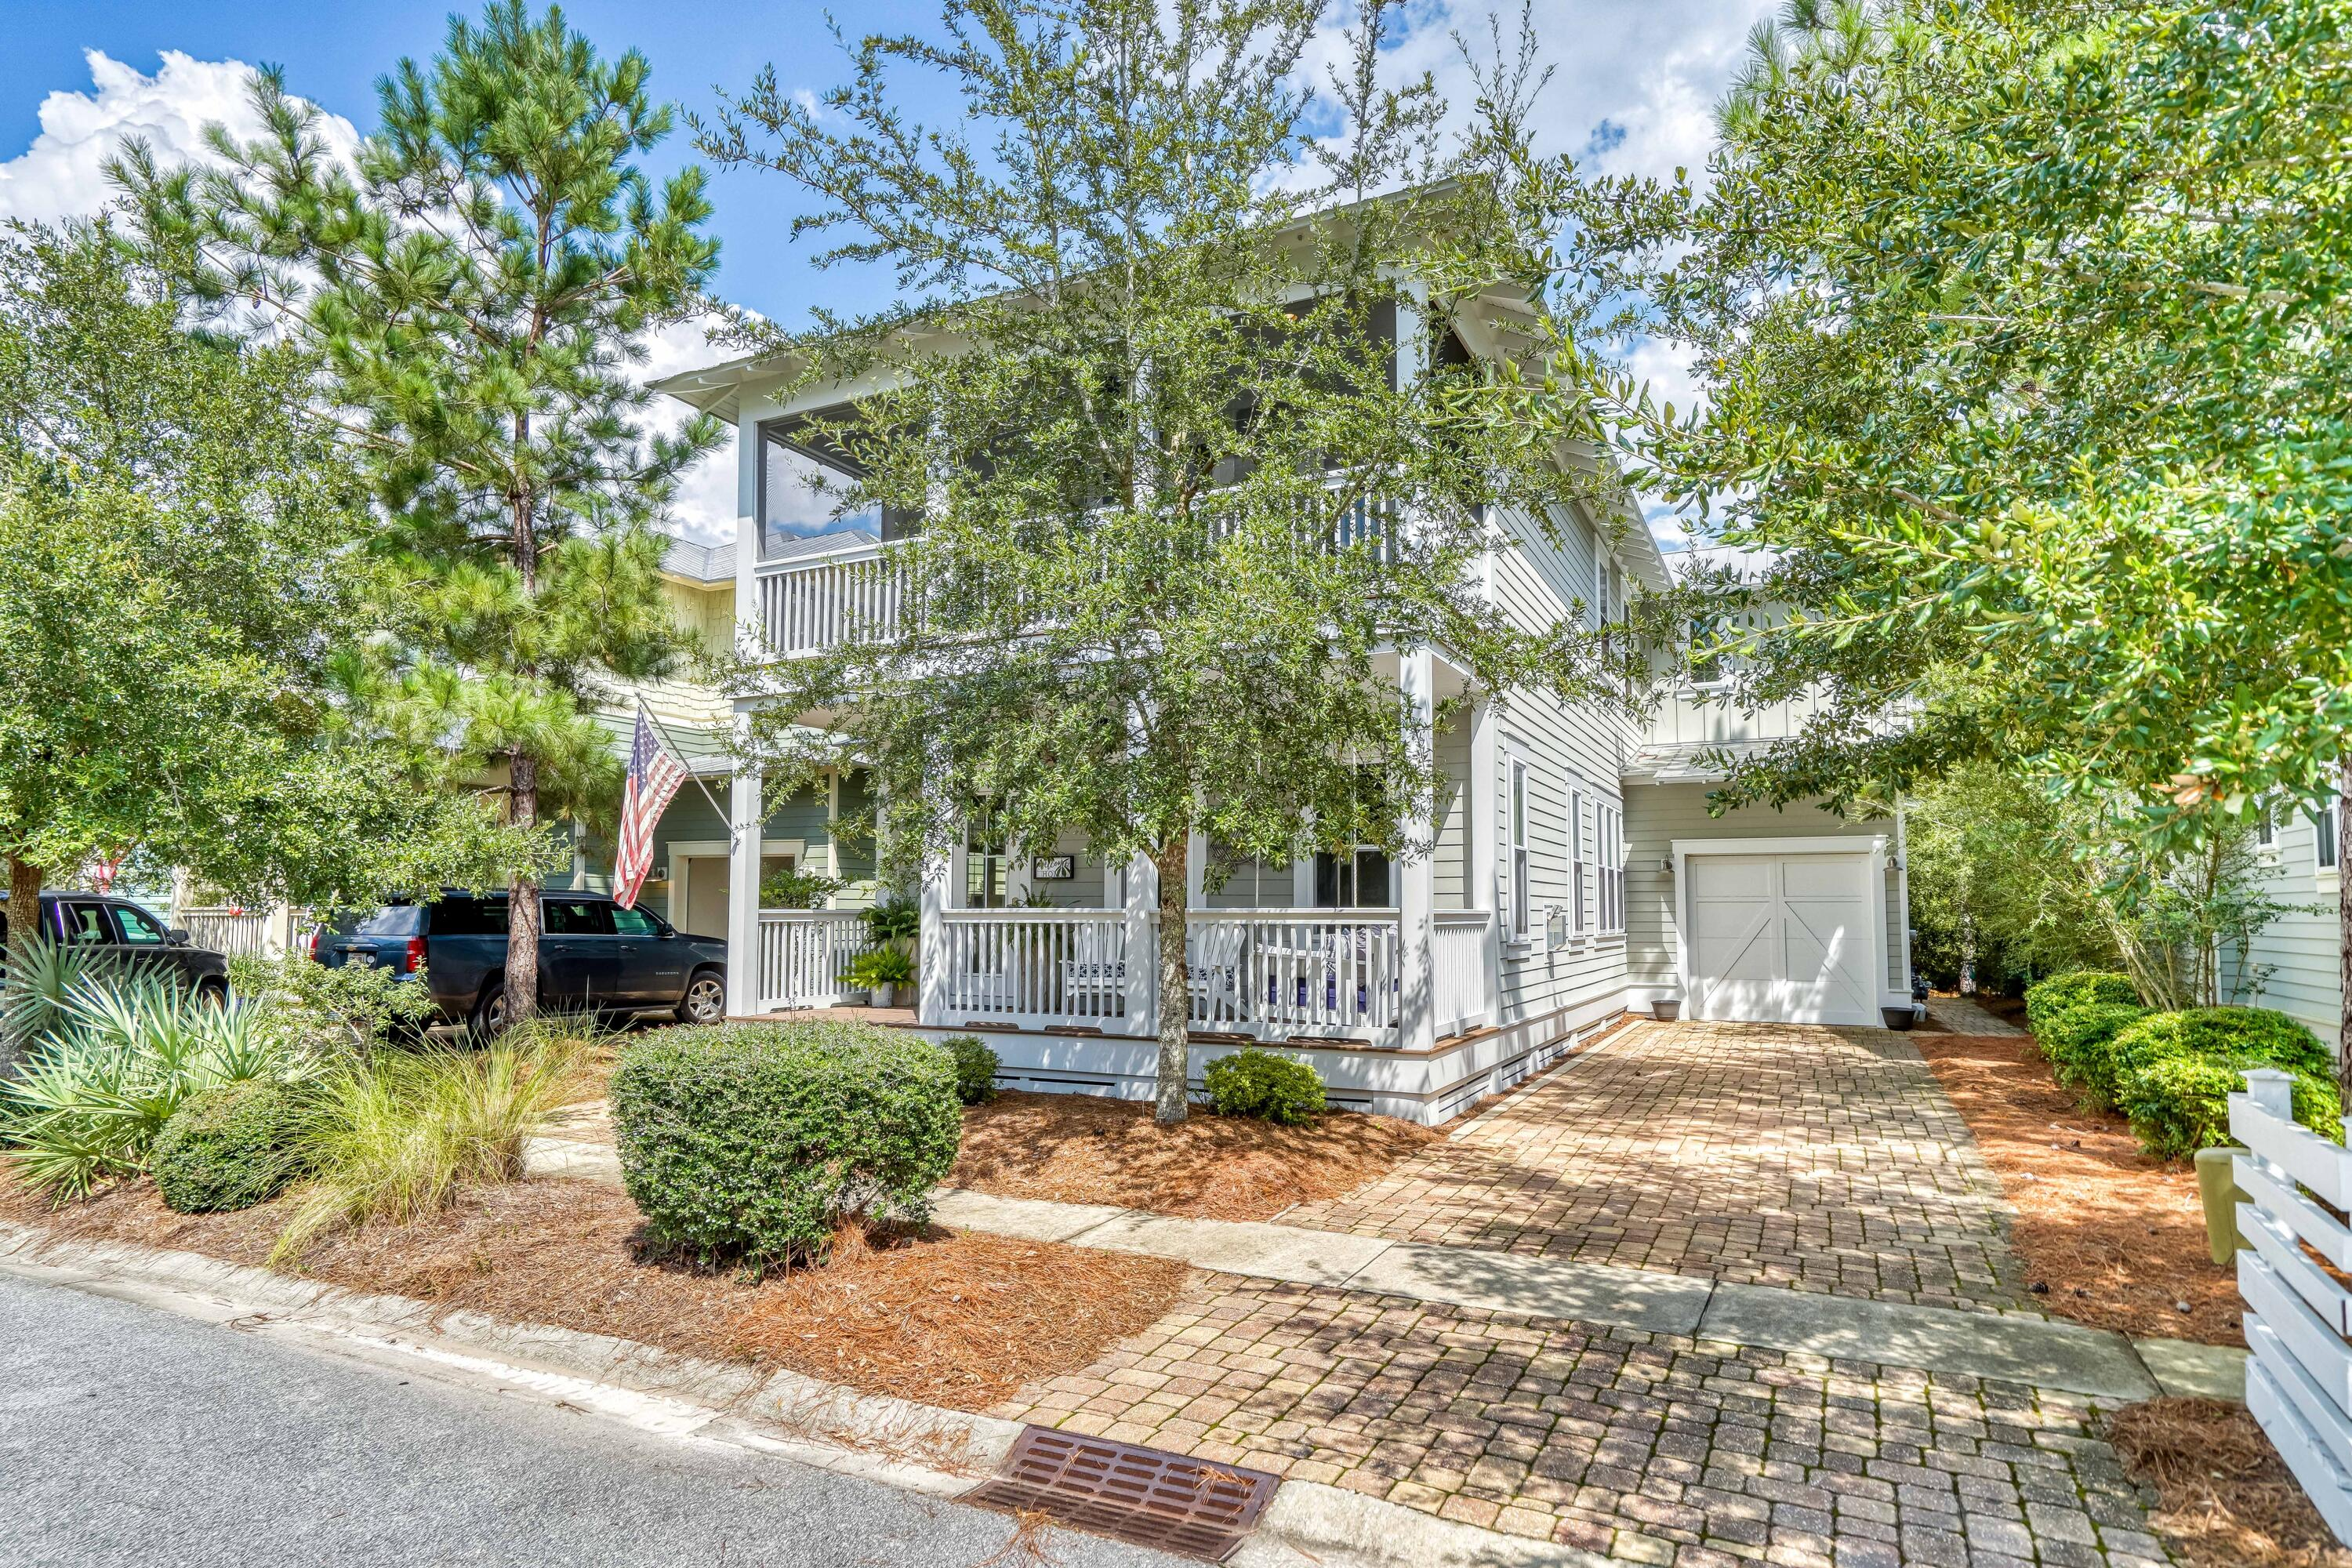 """Beautiful one-owner home on a quiet dead-end street in the NatureWalk community which is conveniently located less than a mile from Seaside, Watercolor, multiple beach accesses, restaurants, grocery stores, and much more. This home has been wonderfully maintained and cared-for and it shows immediately as you step foot onto the front porch which is remarkably cozy and the perfect spot for drinking your morning coffee or winding down those 30A days. When you enter the home you're met with abundant light from the many windows which creates an open spacious feel and there are quality finishes around every corner from coffered ceilings and a custom fireplace in the living room to the vertical shiplap accent walls that continue throughout. The living area flows into the dining room and then into an oversized kitchen which is equipped with all stainless steel appliances and granite countertops PLUS there's a 2nd sitting room/TV room just off the kitchen area.   This wide-open floor plan has tons of downstairs square footage and is excellent for entertaining and hosting multiple families.   Out the back door the home backs up to a wooded preserve that is exceptionally private and has a screened-in porch complete with an outdoor storage closet and an outdoor shower.  As we make our way upstairs there are 4 total bedrooms, 3 that have access to screened-in porches, and 2 with ensuite baths.   The master is very spacious and has a large master bath with soaking tub and separate walk-in shower and has a private porch that's screened-in and overlooks the wooded preserve area.   Other wonderful features are an attached garage that's perfect for a golf cart, and the golf cart IS INCLUDED with the sale of the home!  The amenities in NatureWalk are absolutely top-notch from the """"Gathering Place"""" with its zero entry pools, heated lap pool, hot tub, hammocks, fire pits, and social gathering areas to the many miles of nature trails including one directly to the beach.   There are also """